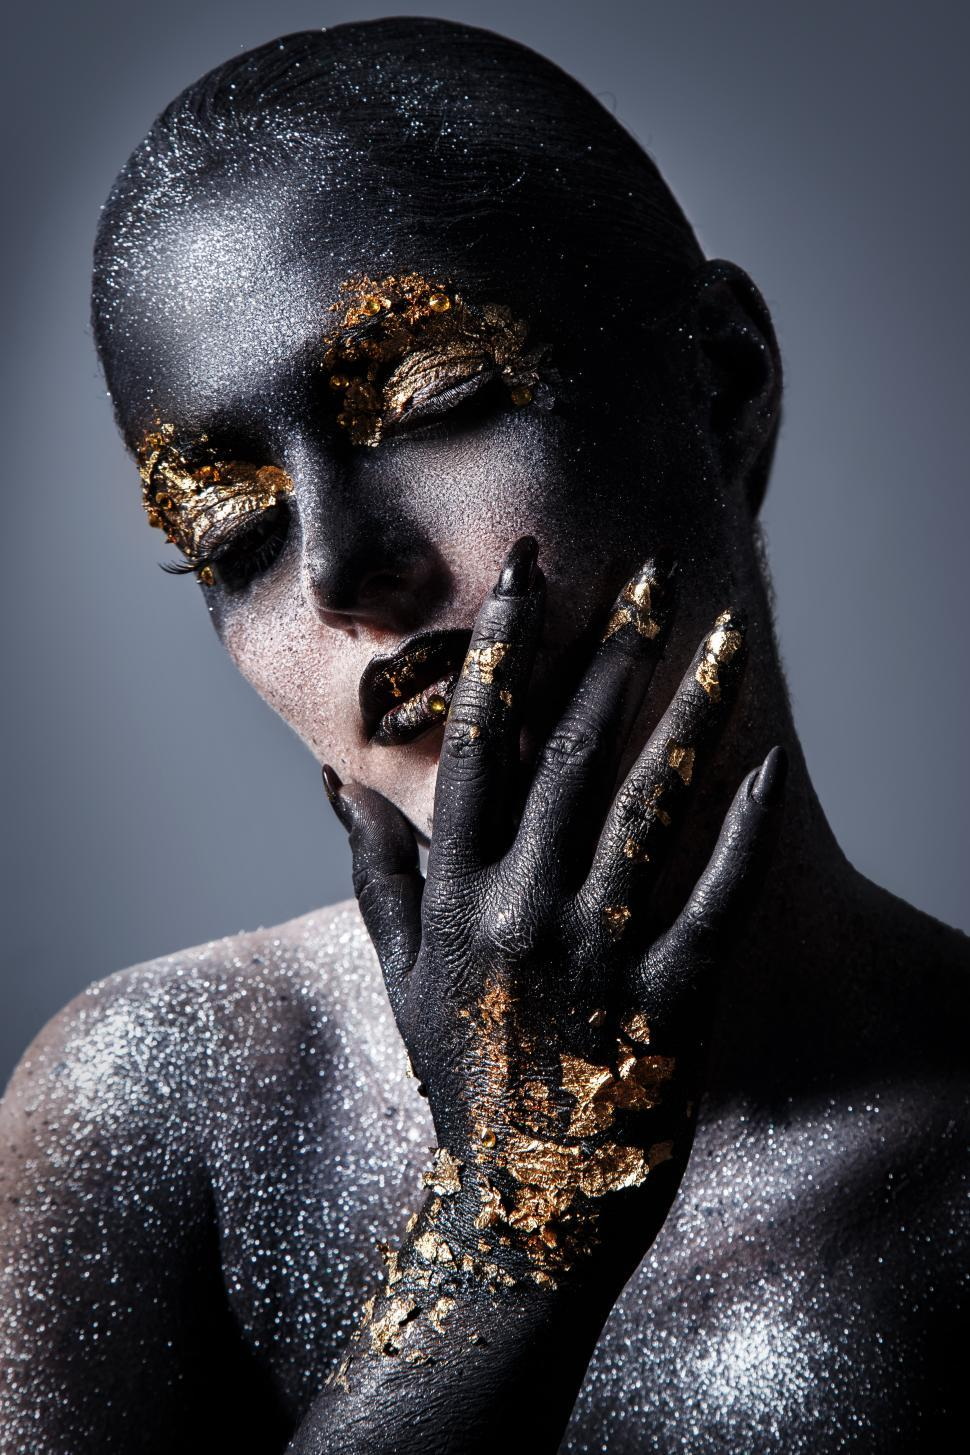 Download Free Stock Photo of Dramatic artistic makeup with gold accents